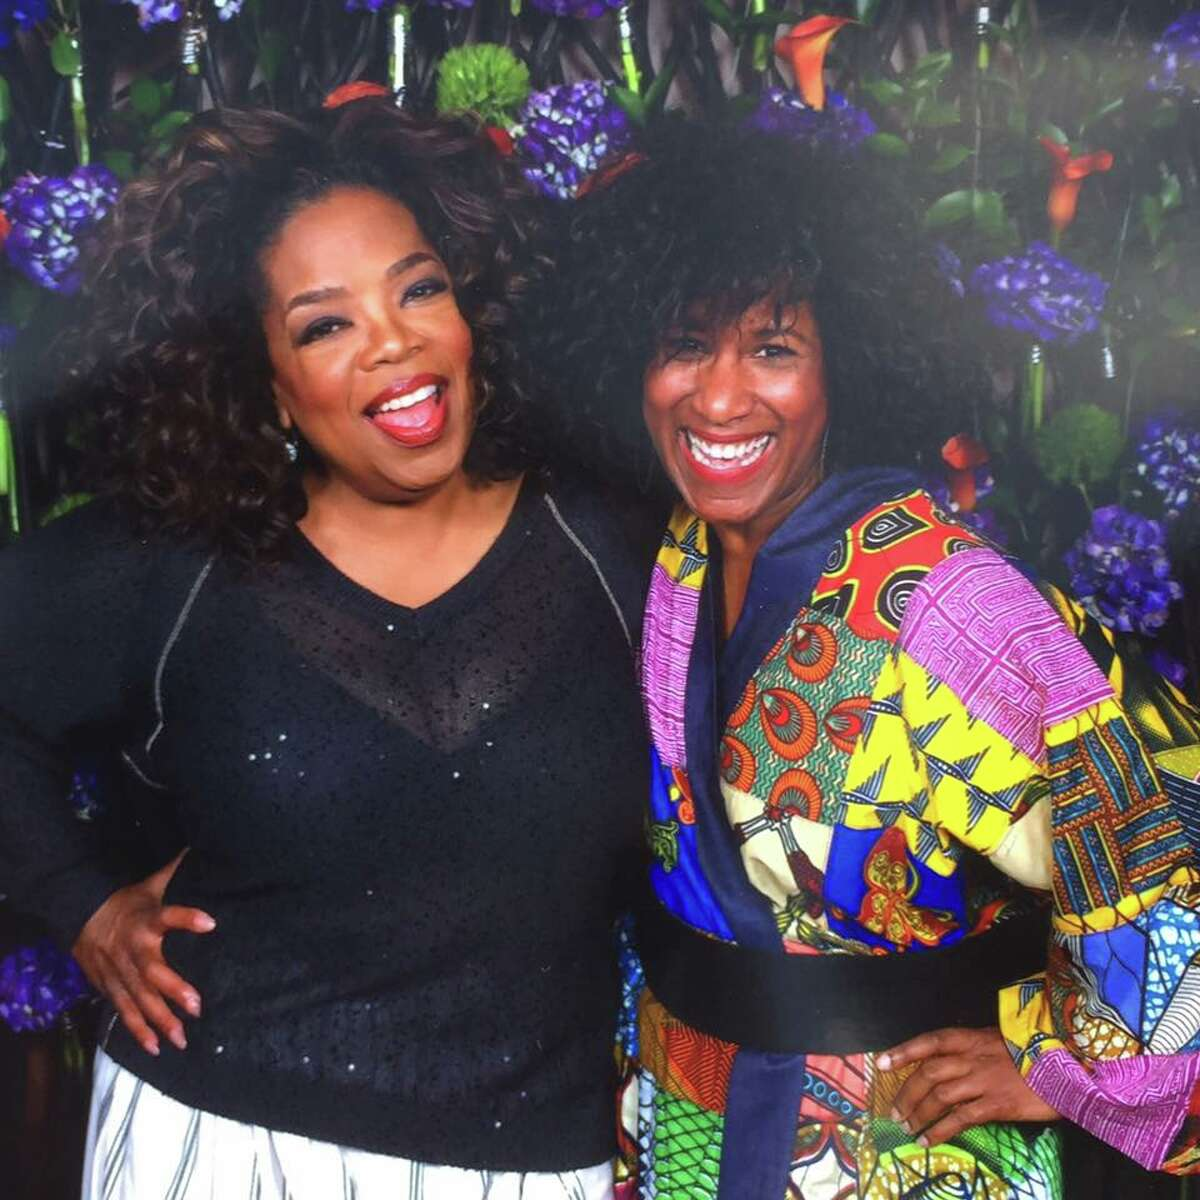 Oprah Winfrey and the Chronicle's Joy Sewing on the O, the Oprah Magazine's Girls' Getaway Cruise on Holland America Line.